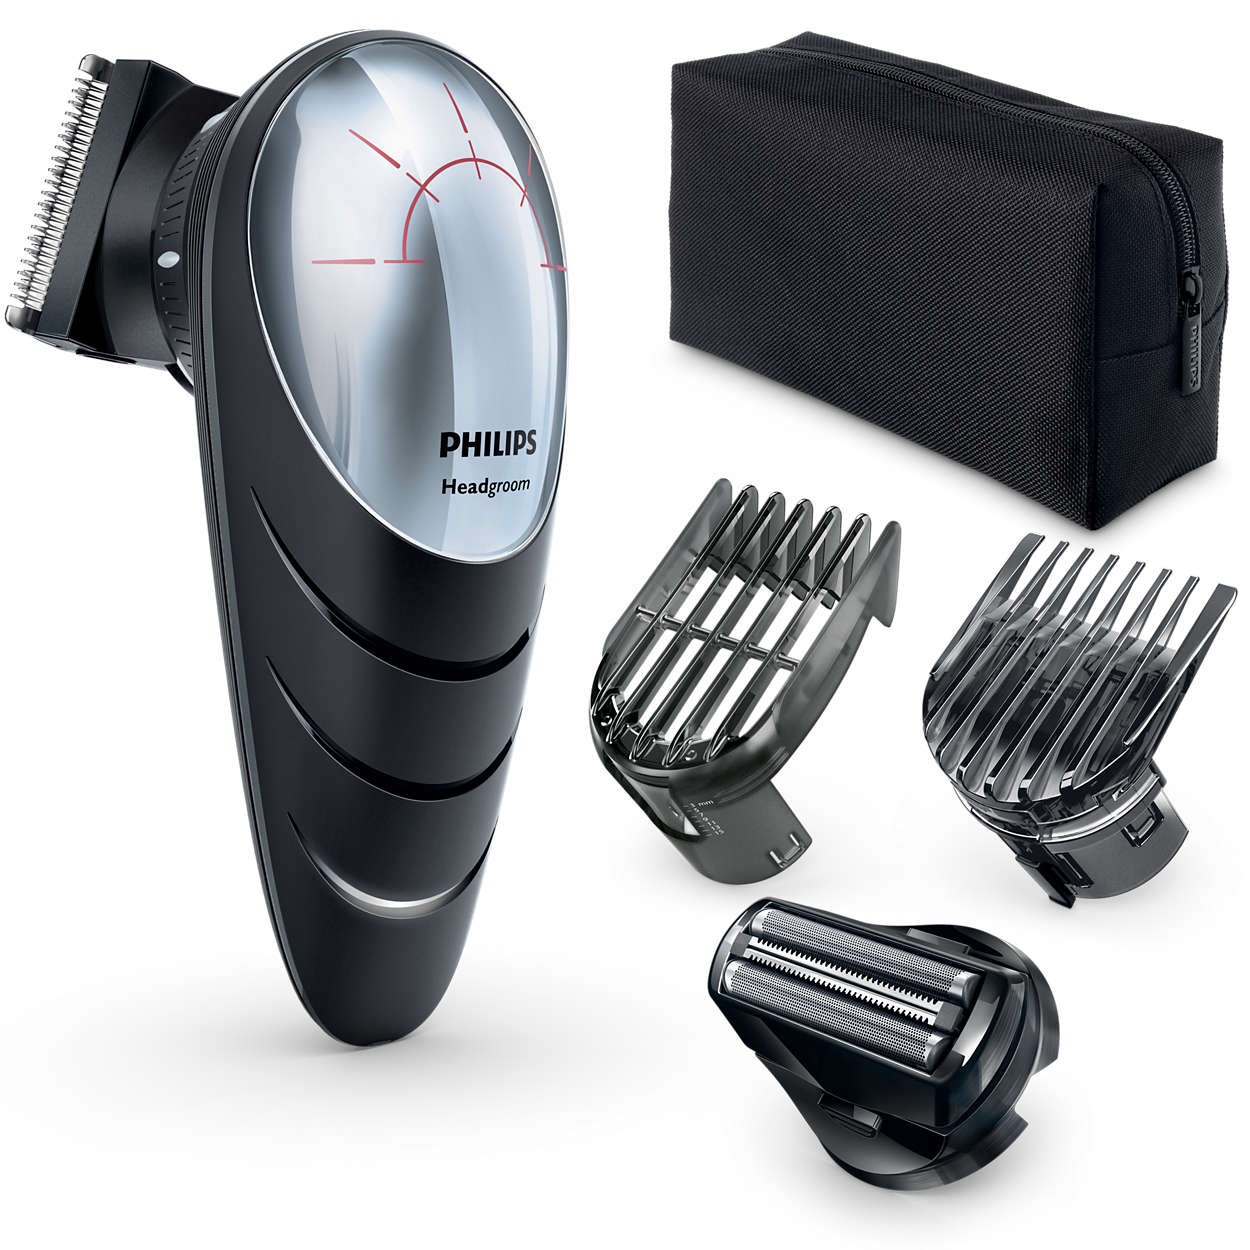 Shave your own head - even in hard-to-reach areas